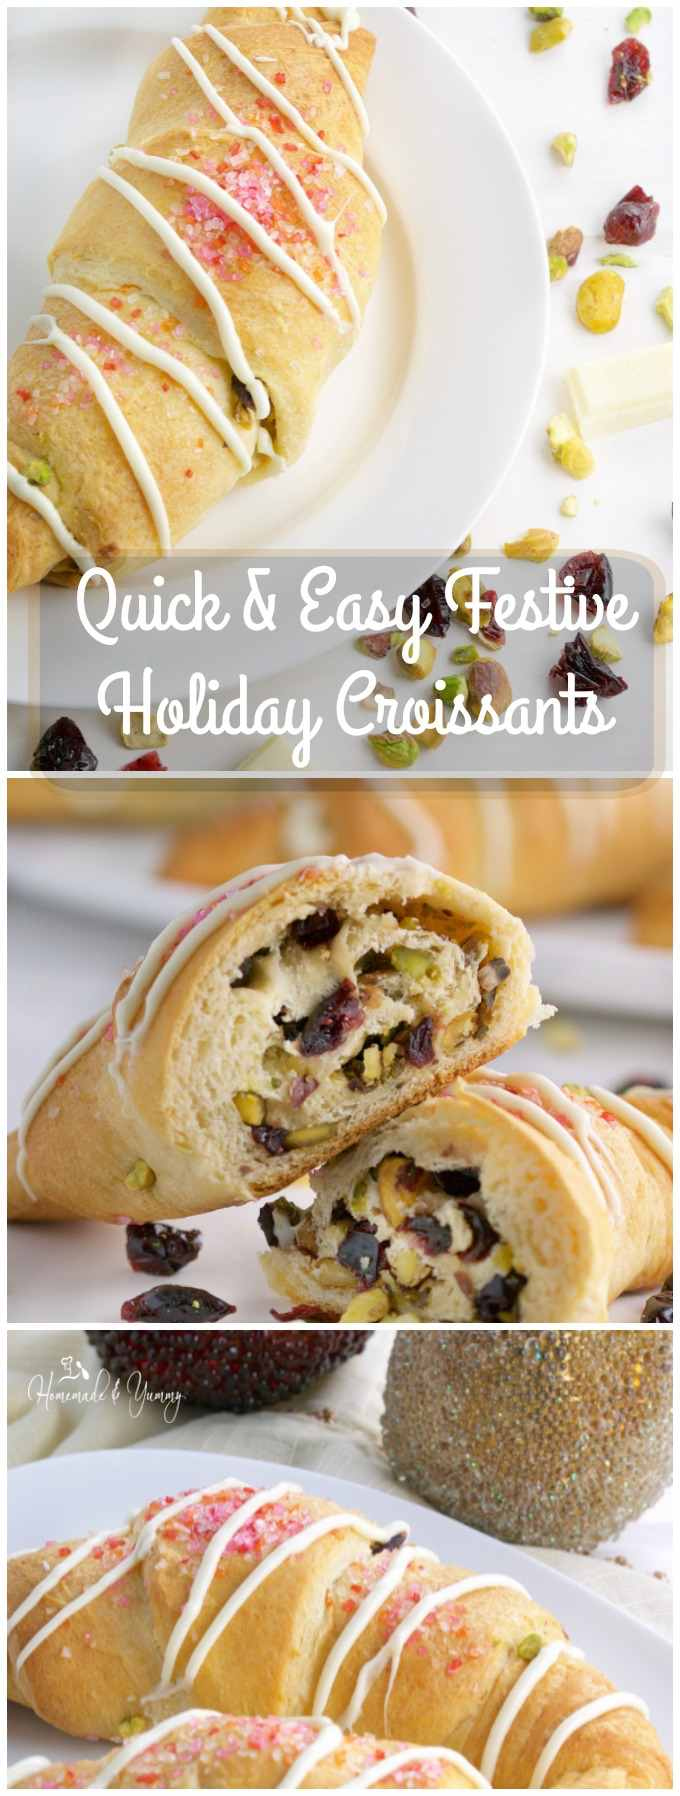 Quick & Easy Festive Holiday Croissants long pin image.